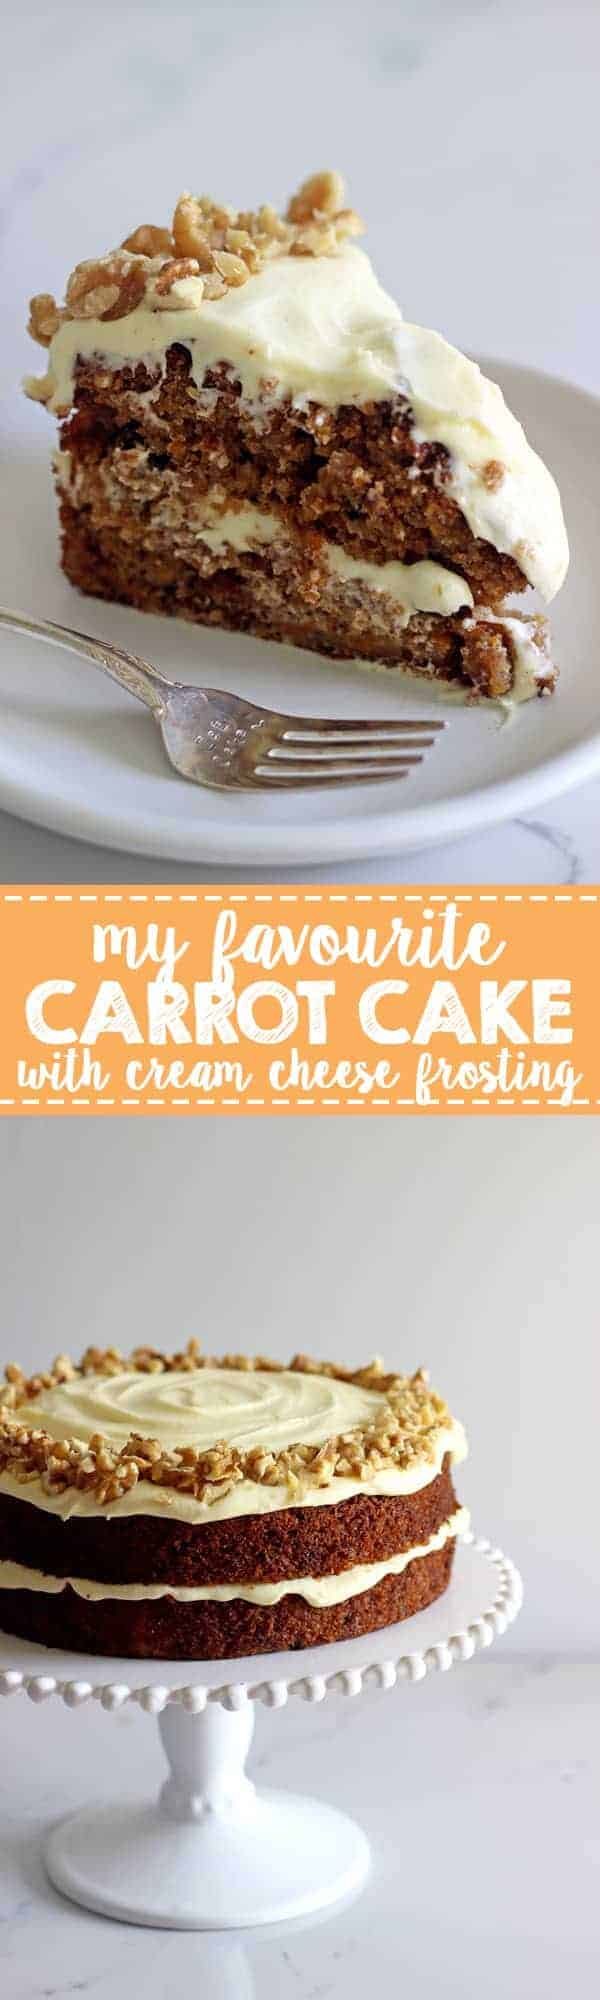 My Favourite Carrot Cake Recipe The Kiwi Country Girl